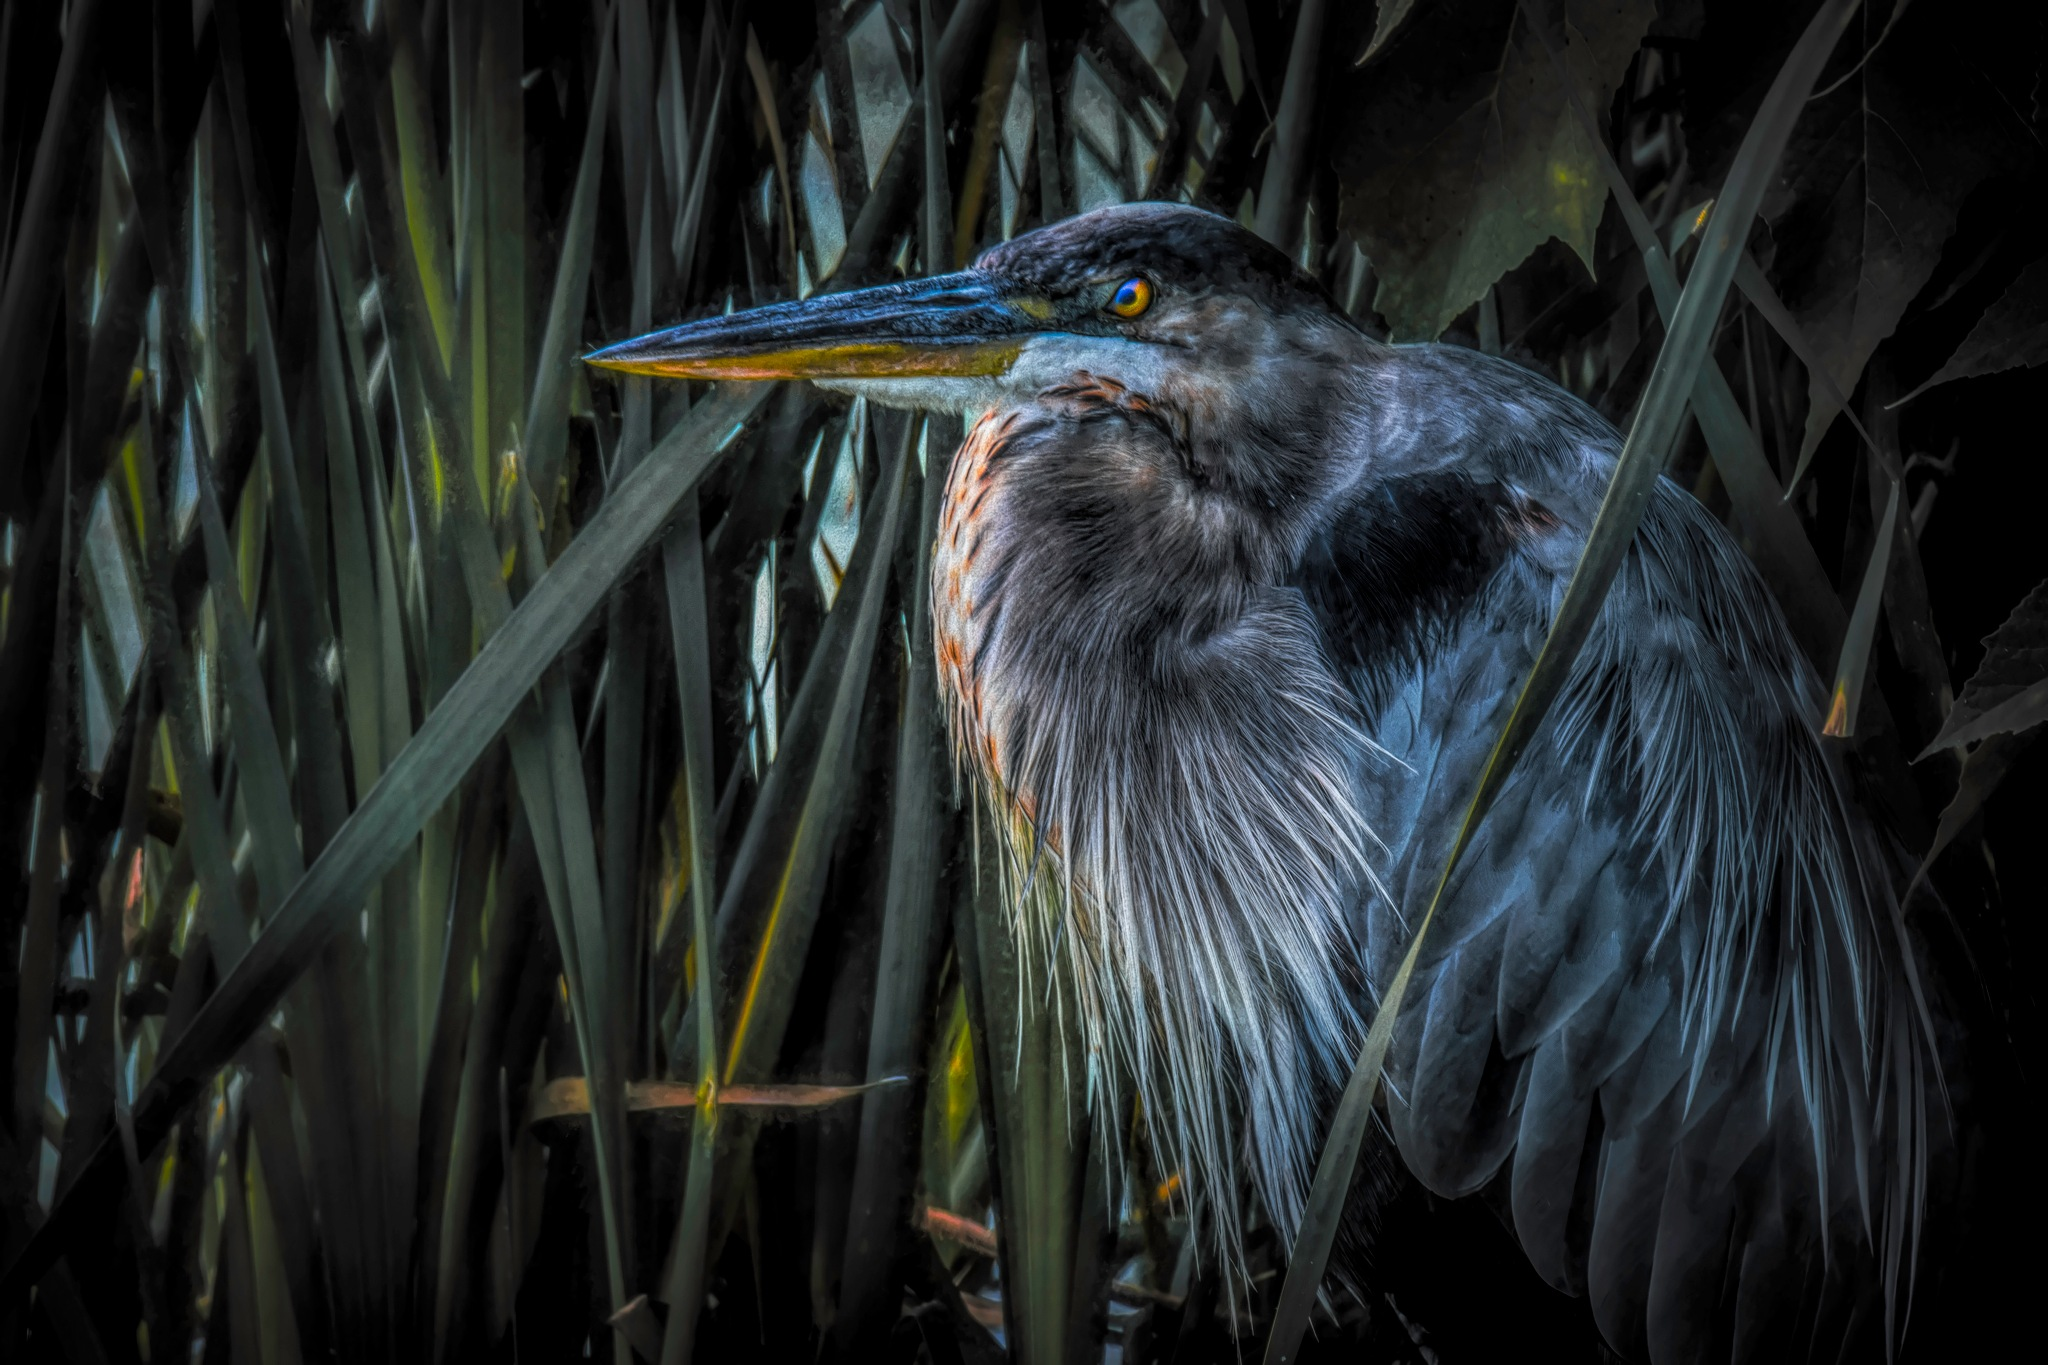 Heron 1 by JohnEllingson